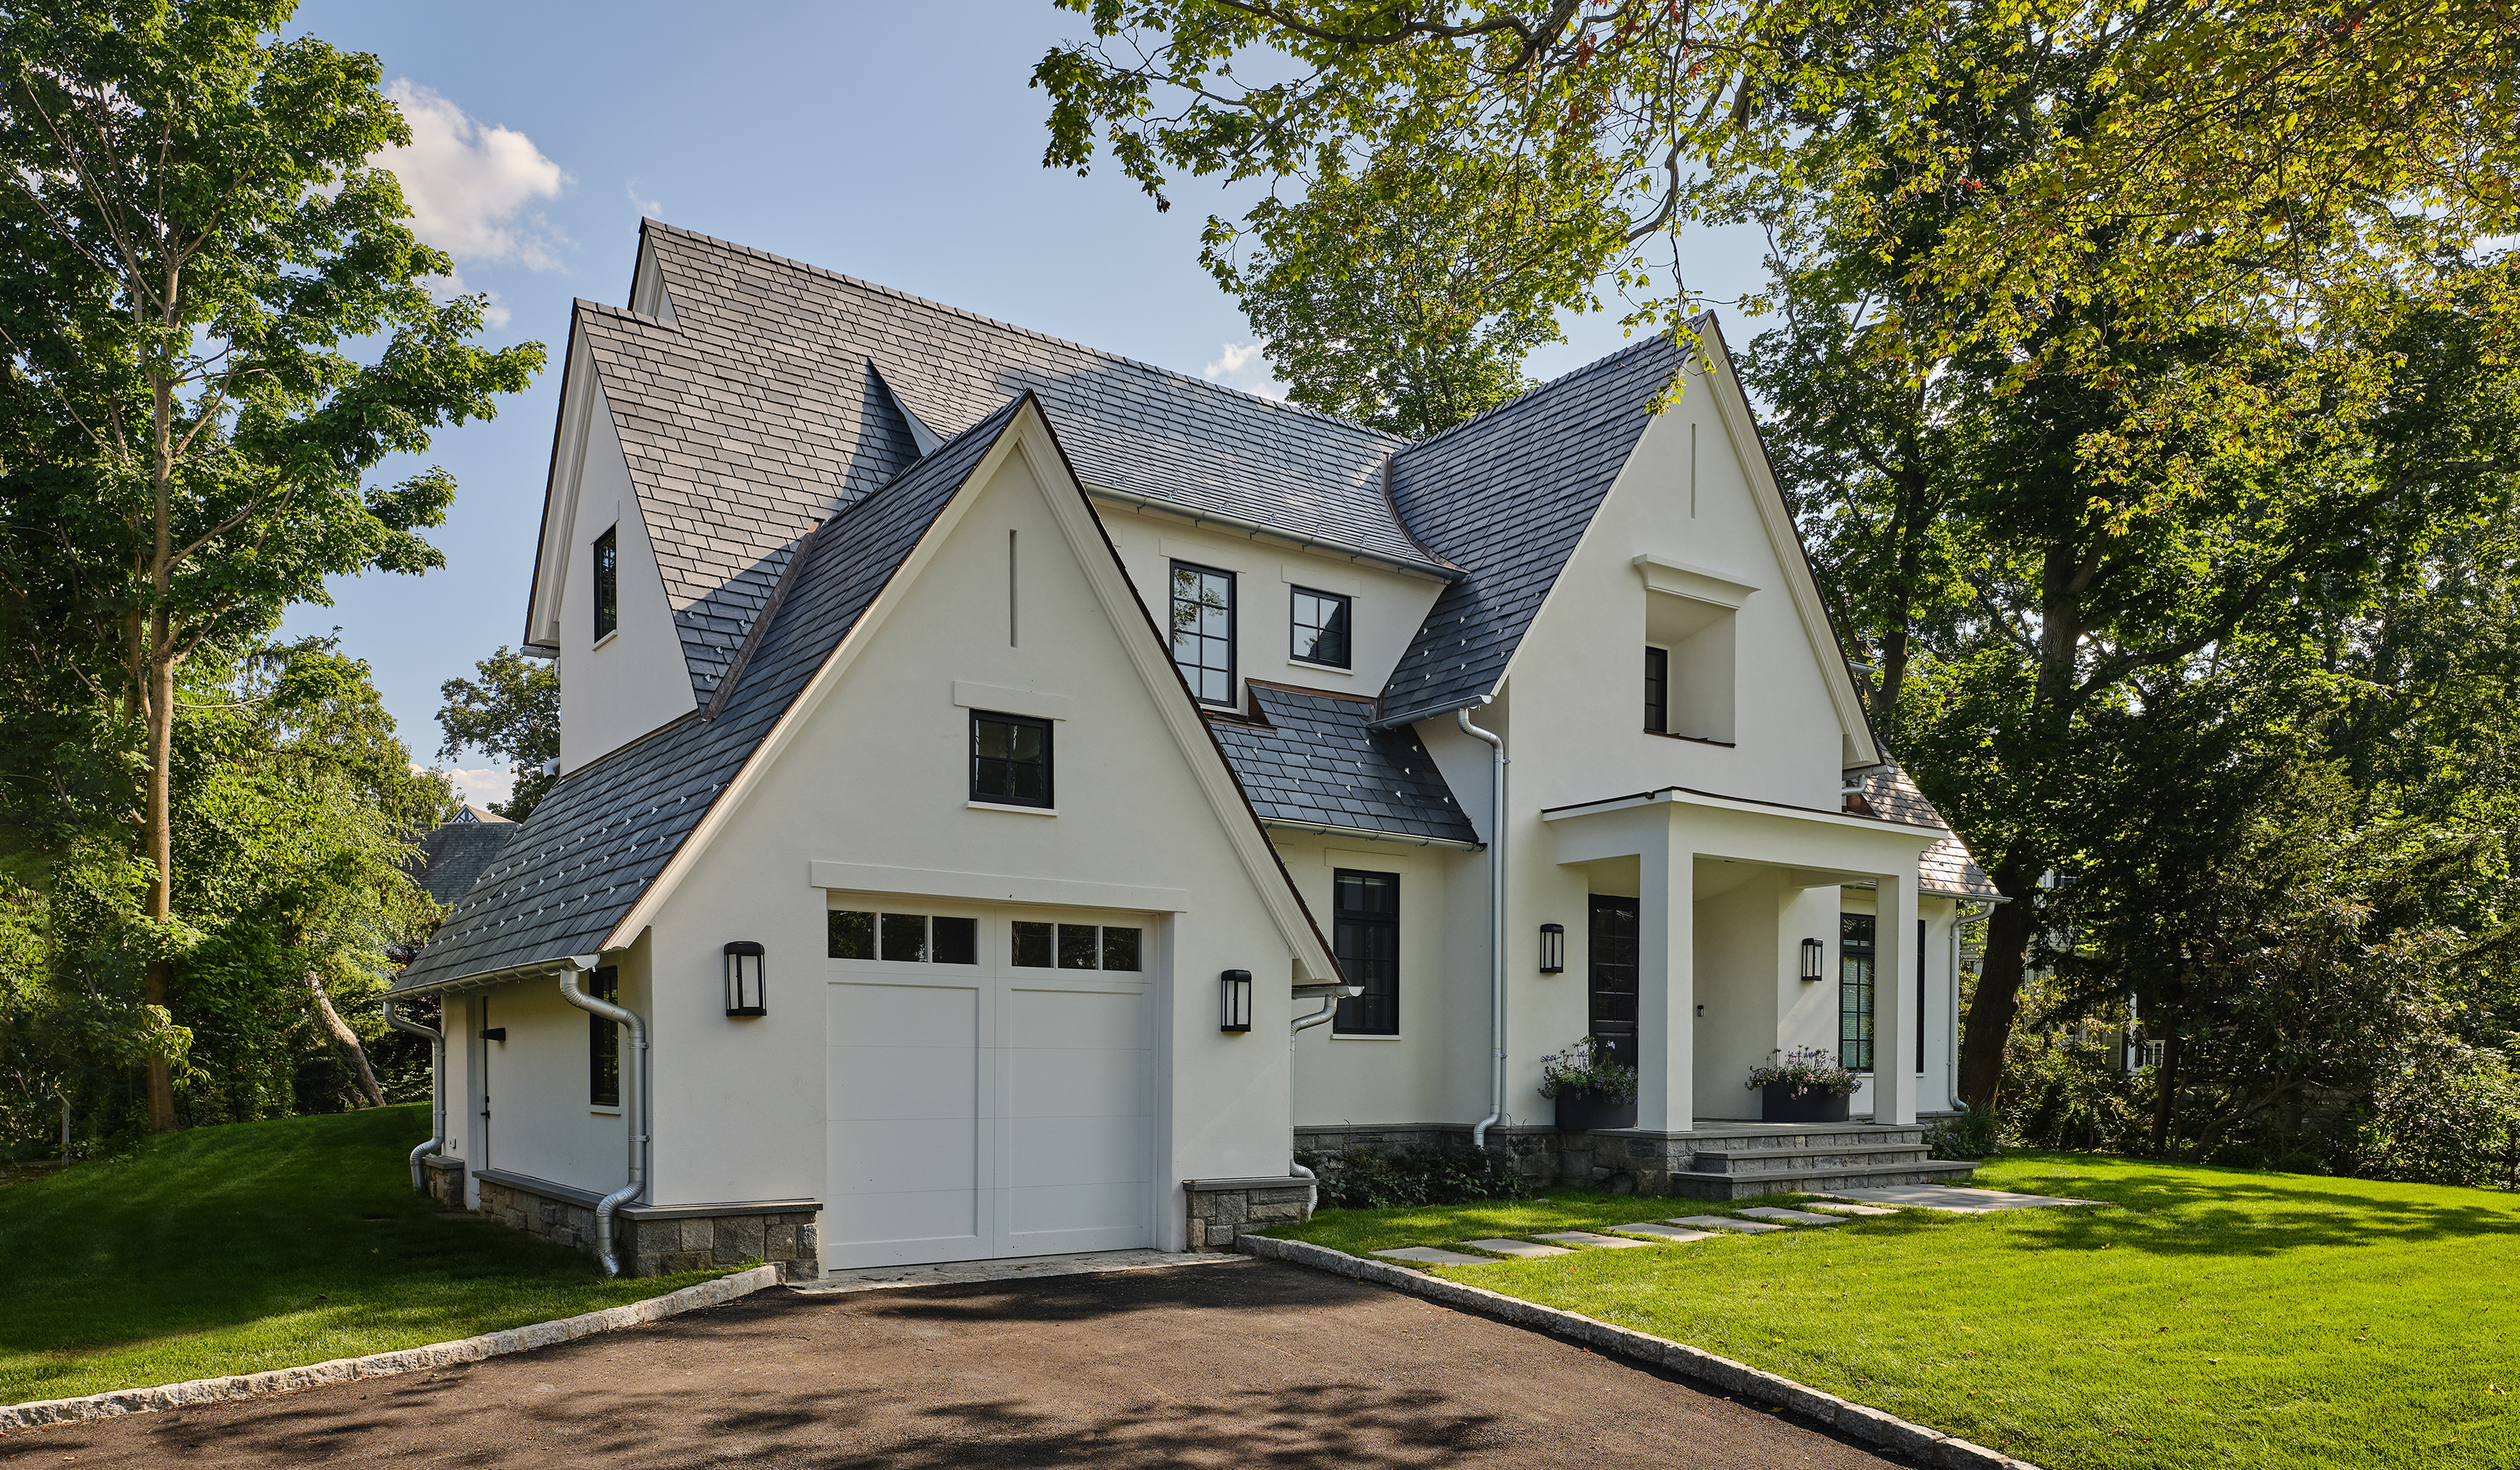 Larchmont NY custom stucco cottage perspective exterior design of white stucco and synthetic slate roof